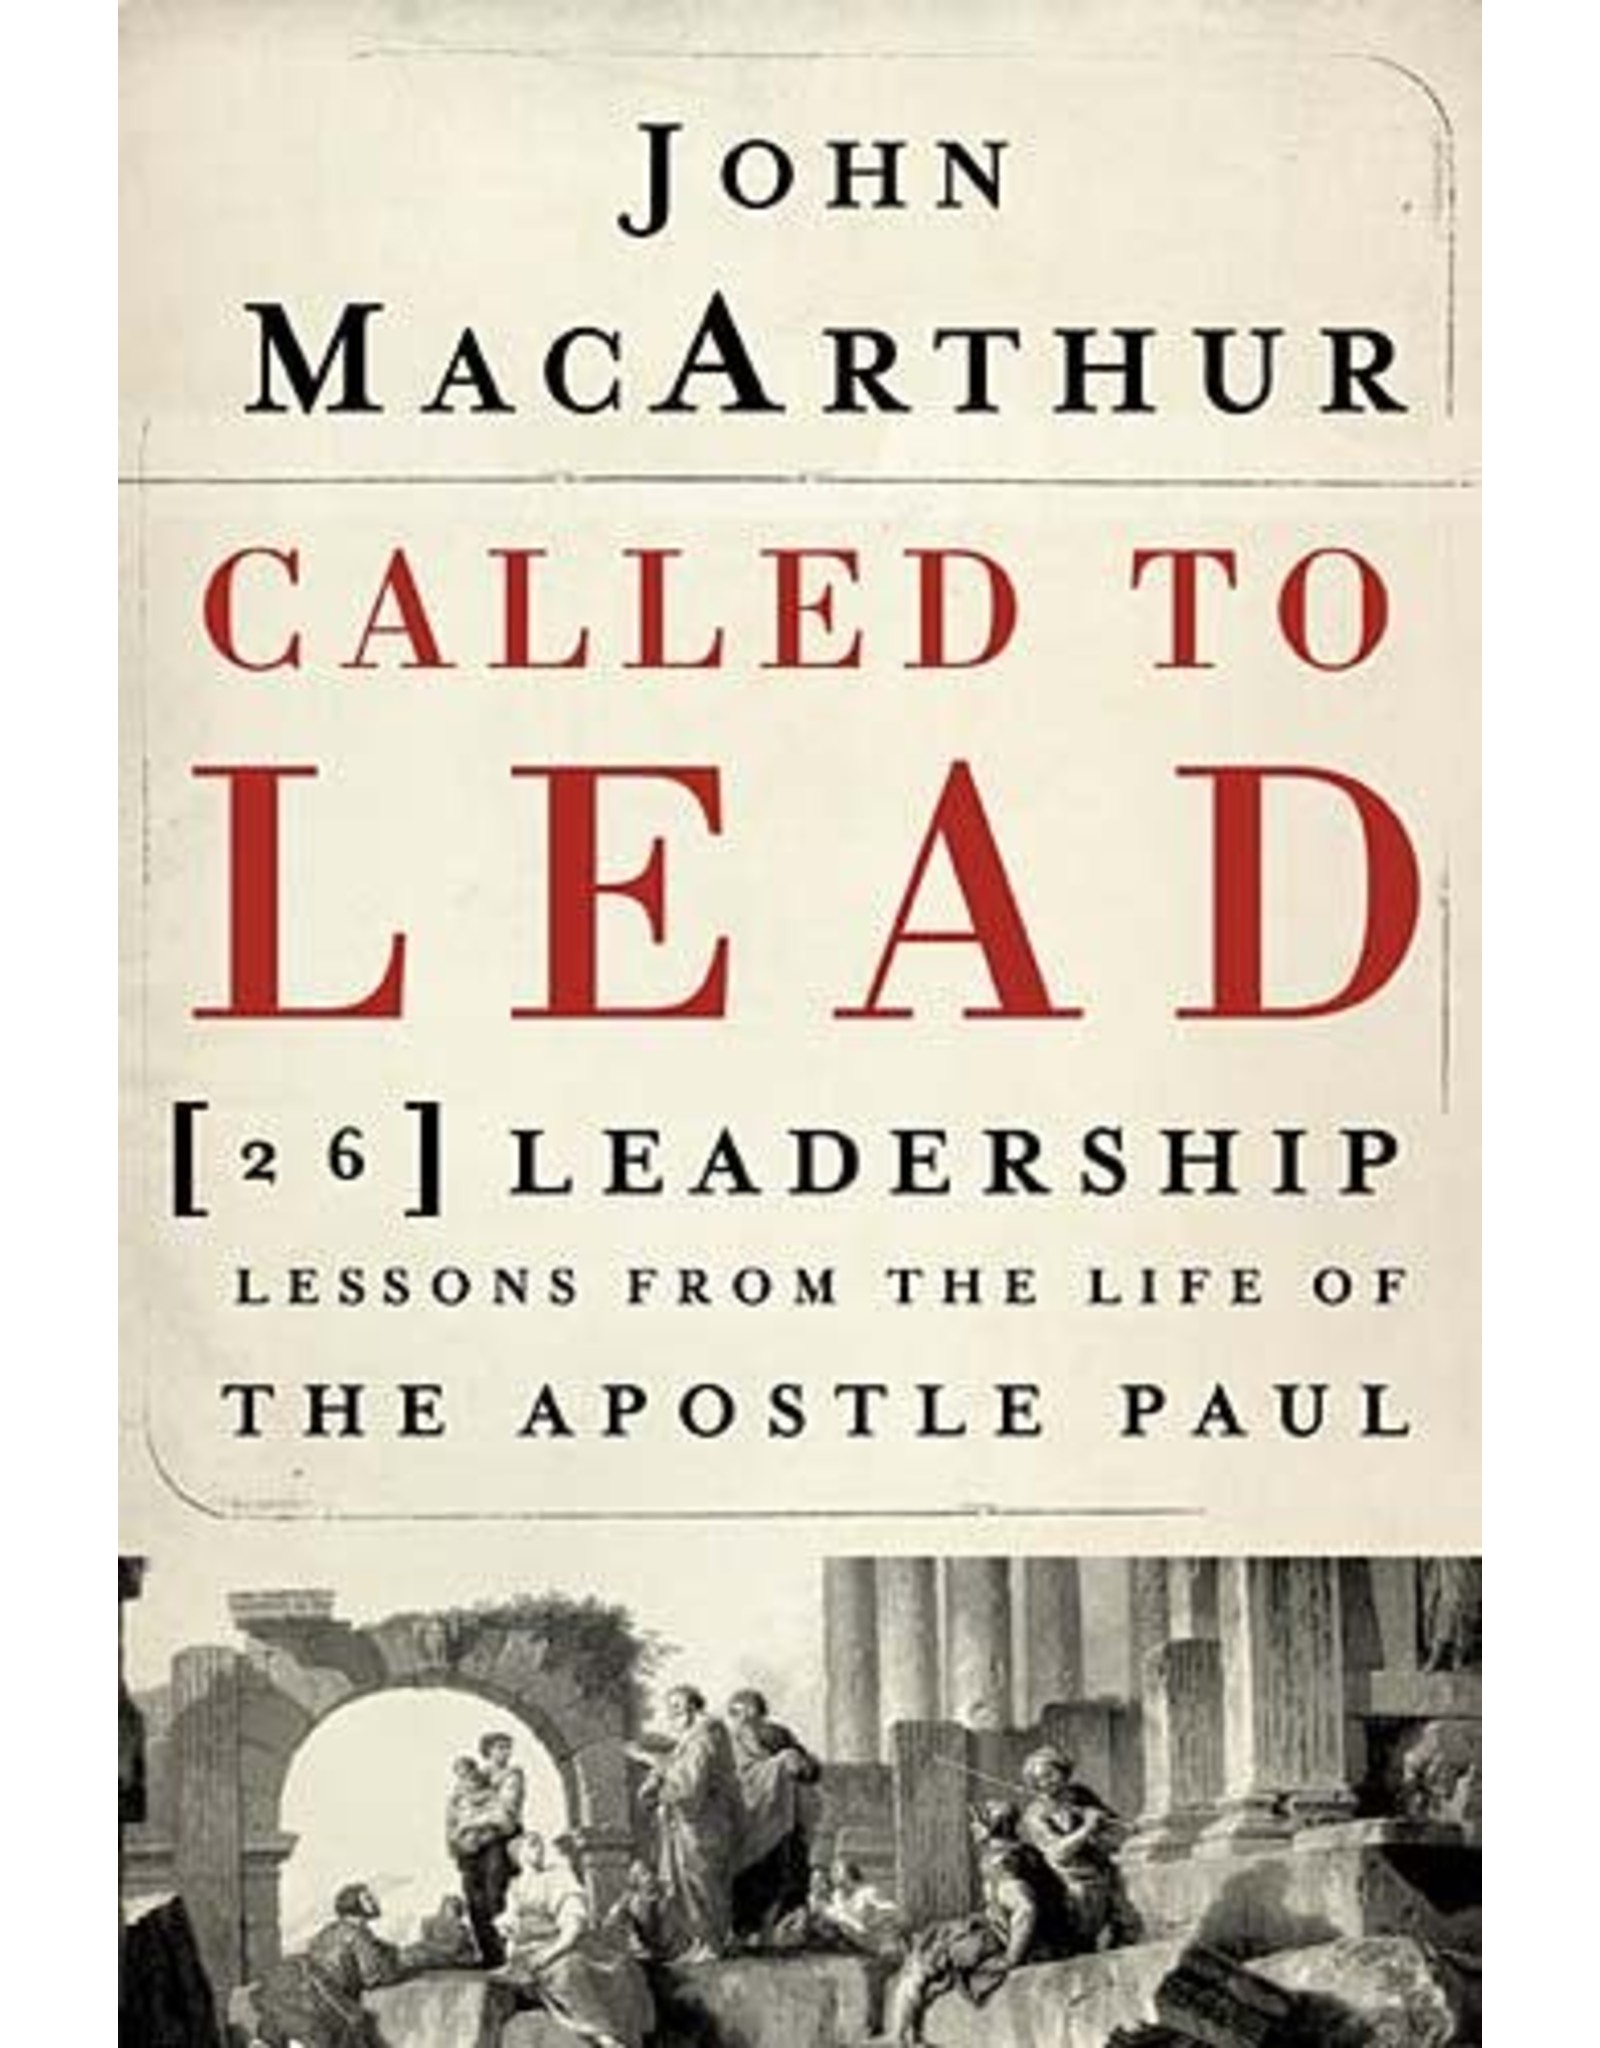 Harper Collins / Thomas Nelson / Zondervan Called to Lead: 26 Leadership Lessons from the Life of the Apostle Paul